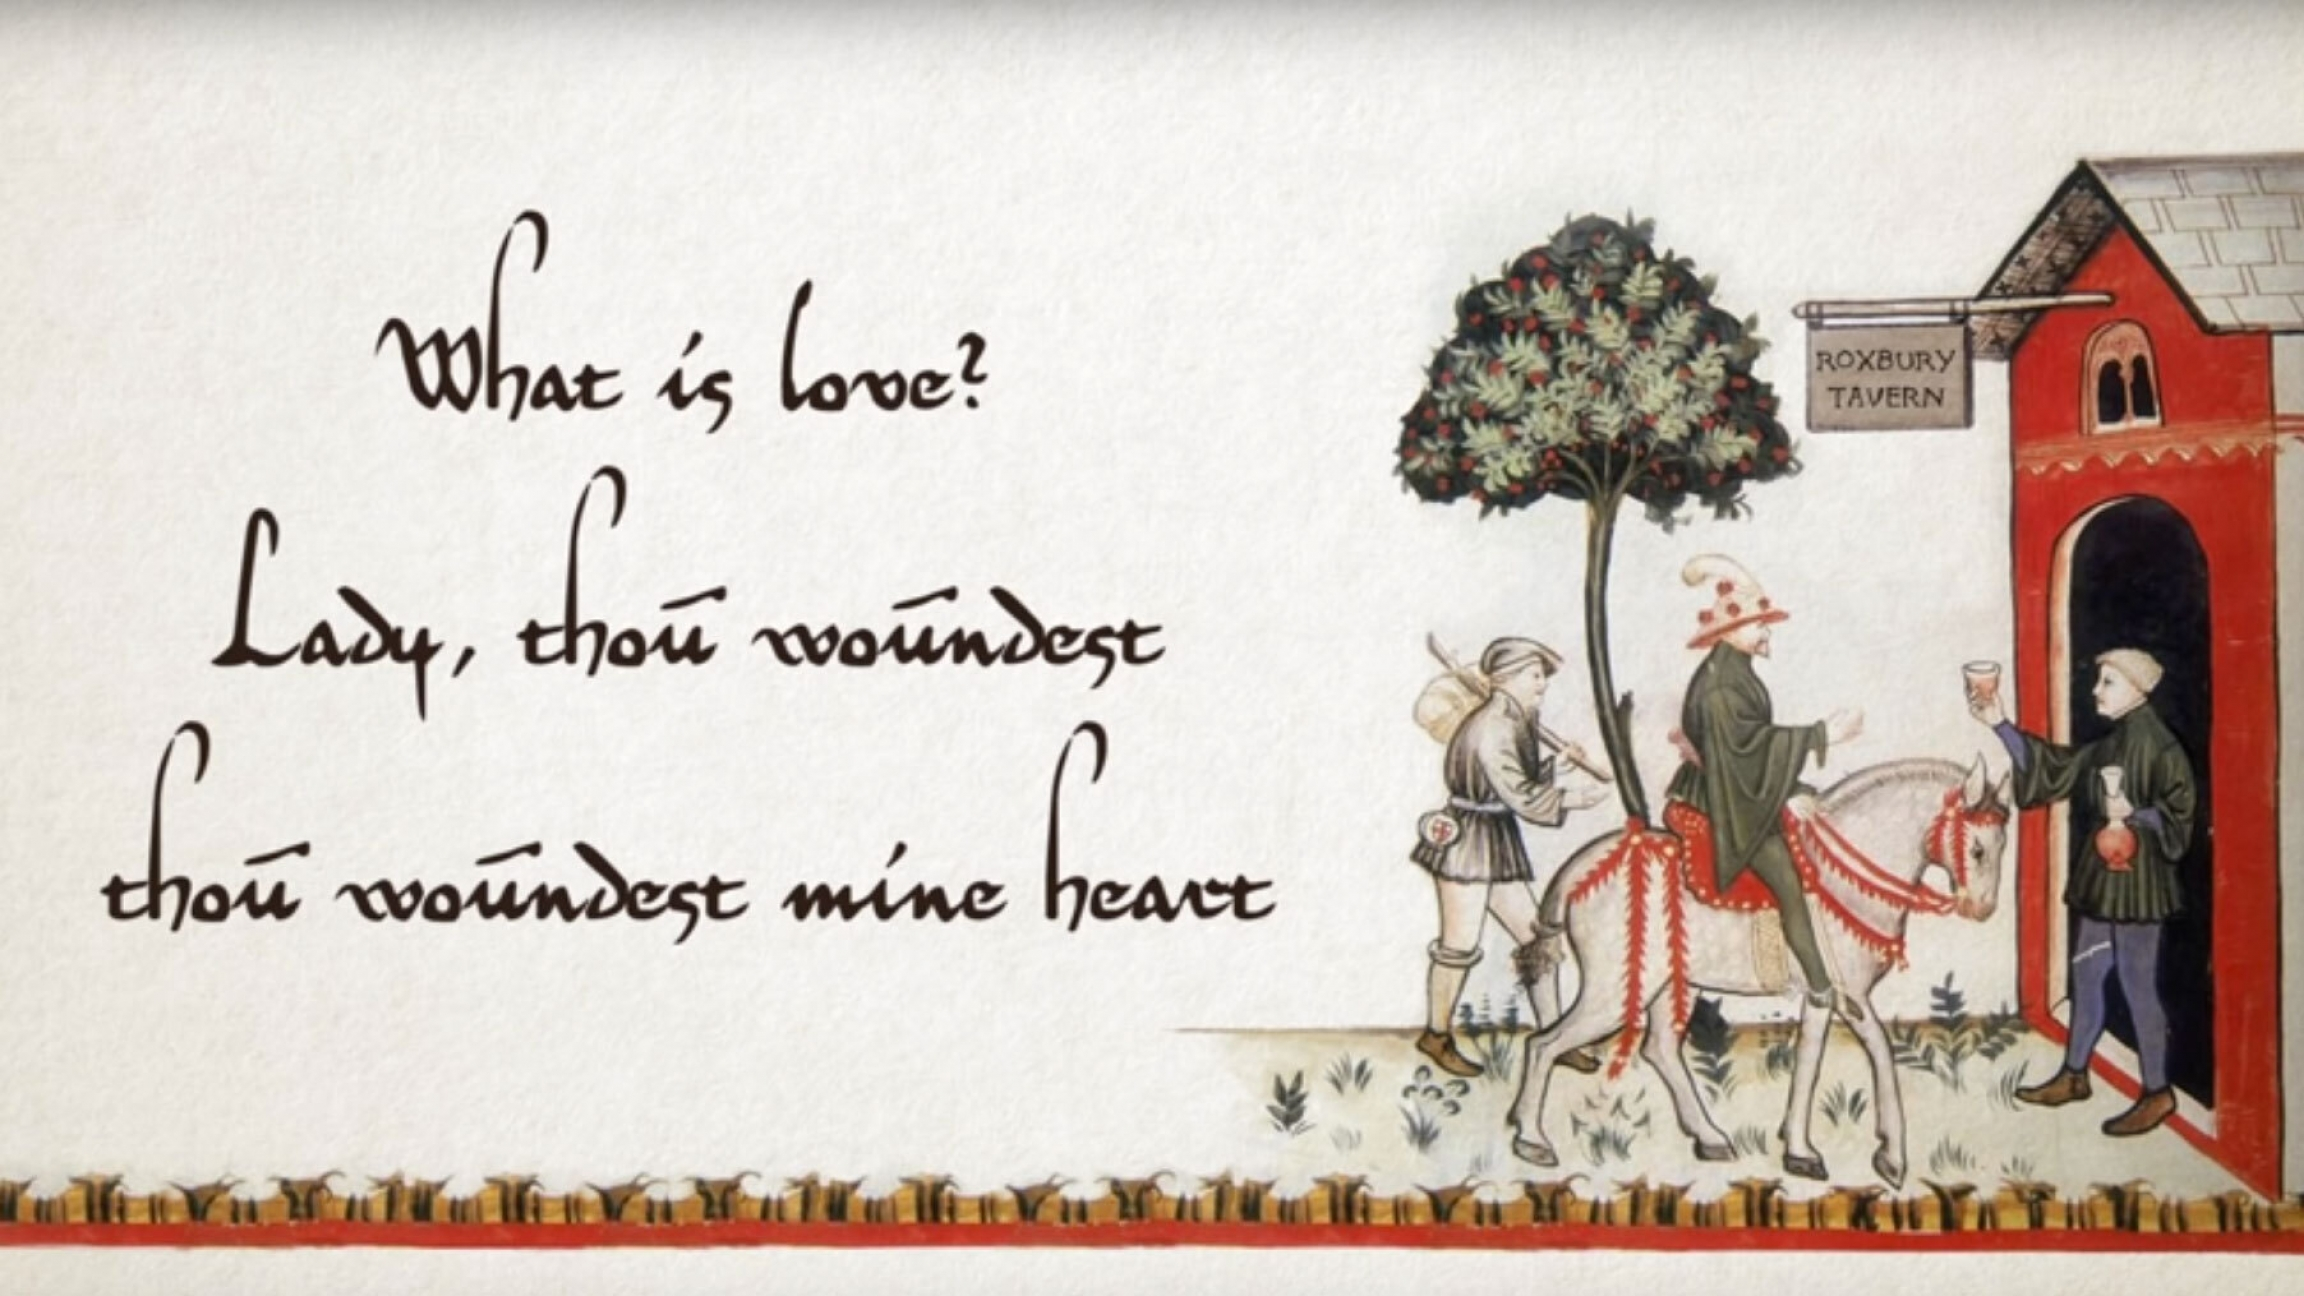 A group of people stand outside a red house near a white horse with fanciful lyrics